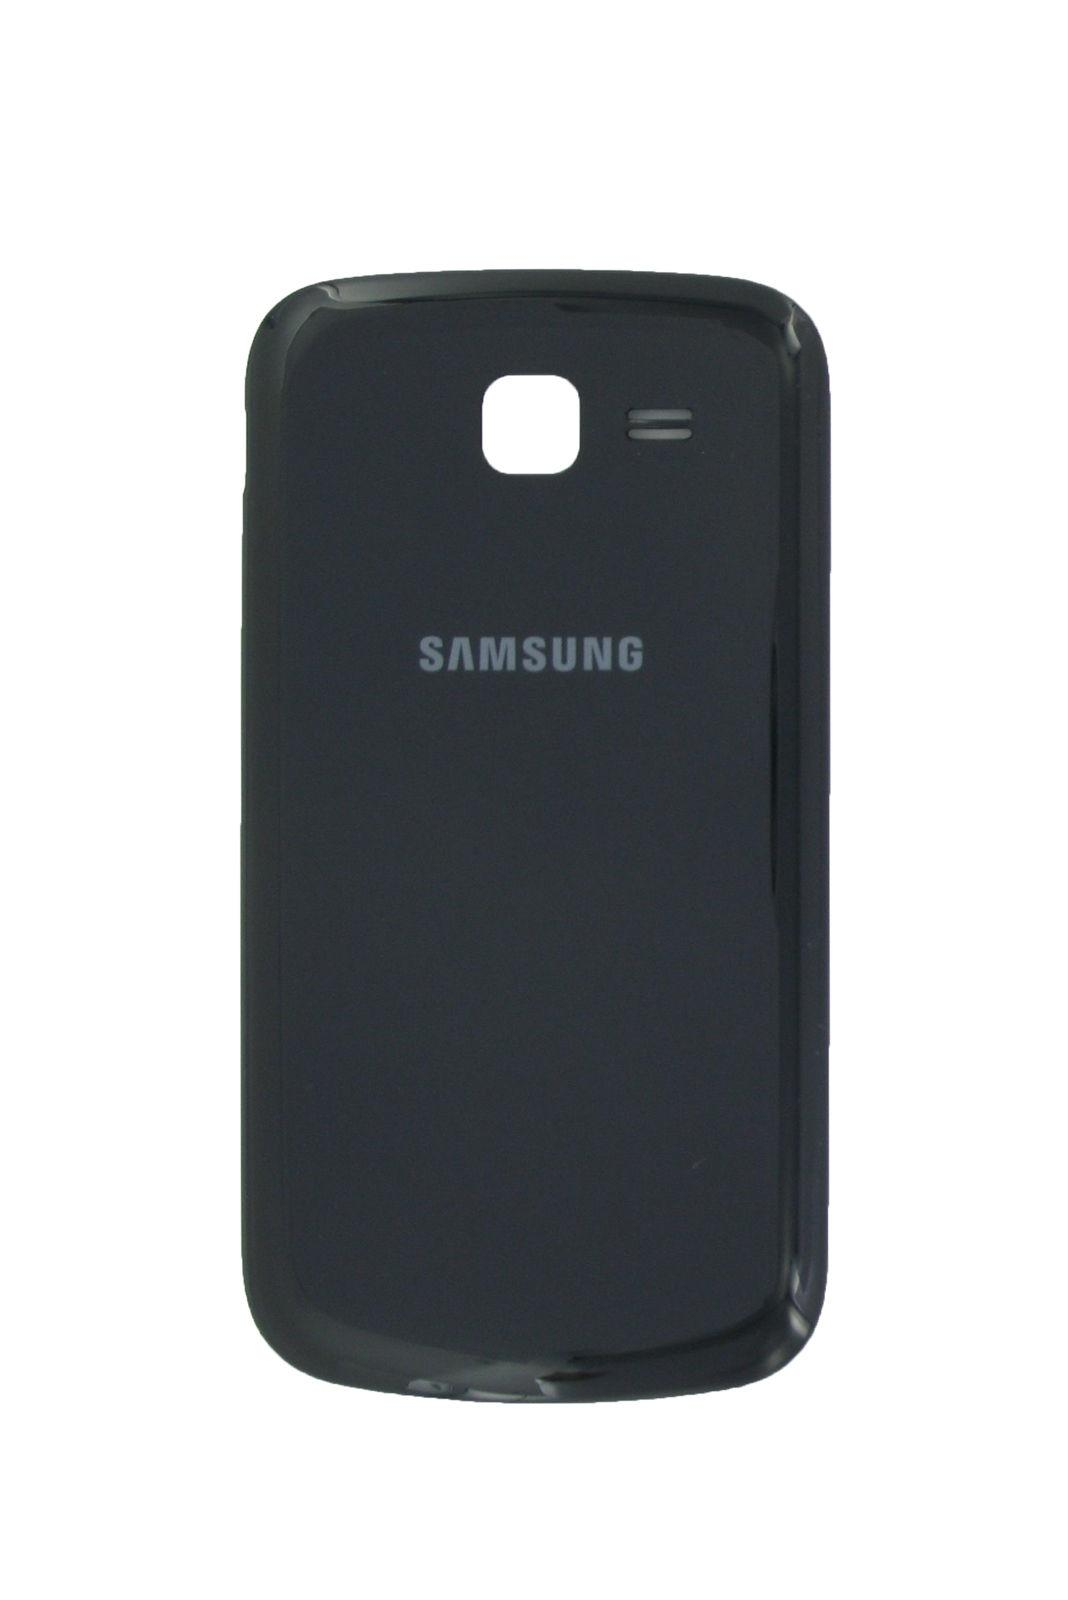 Samsung galaxy trend lite s7390 battery cover black mobile parts - Samsung galaxy trend lite s7390 ...